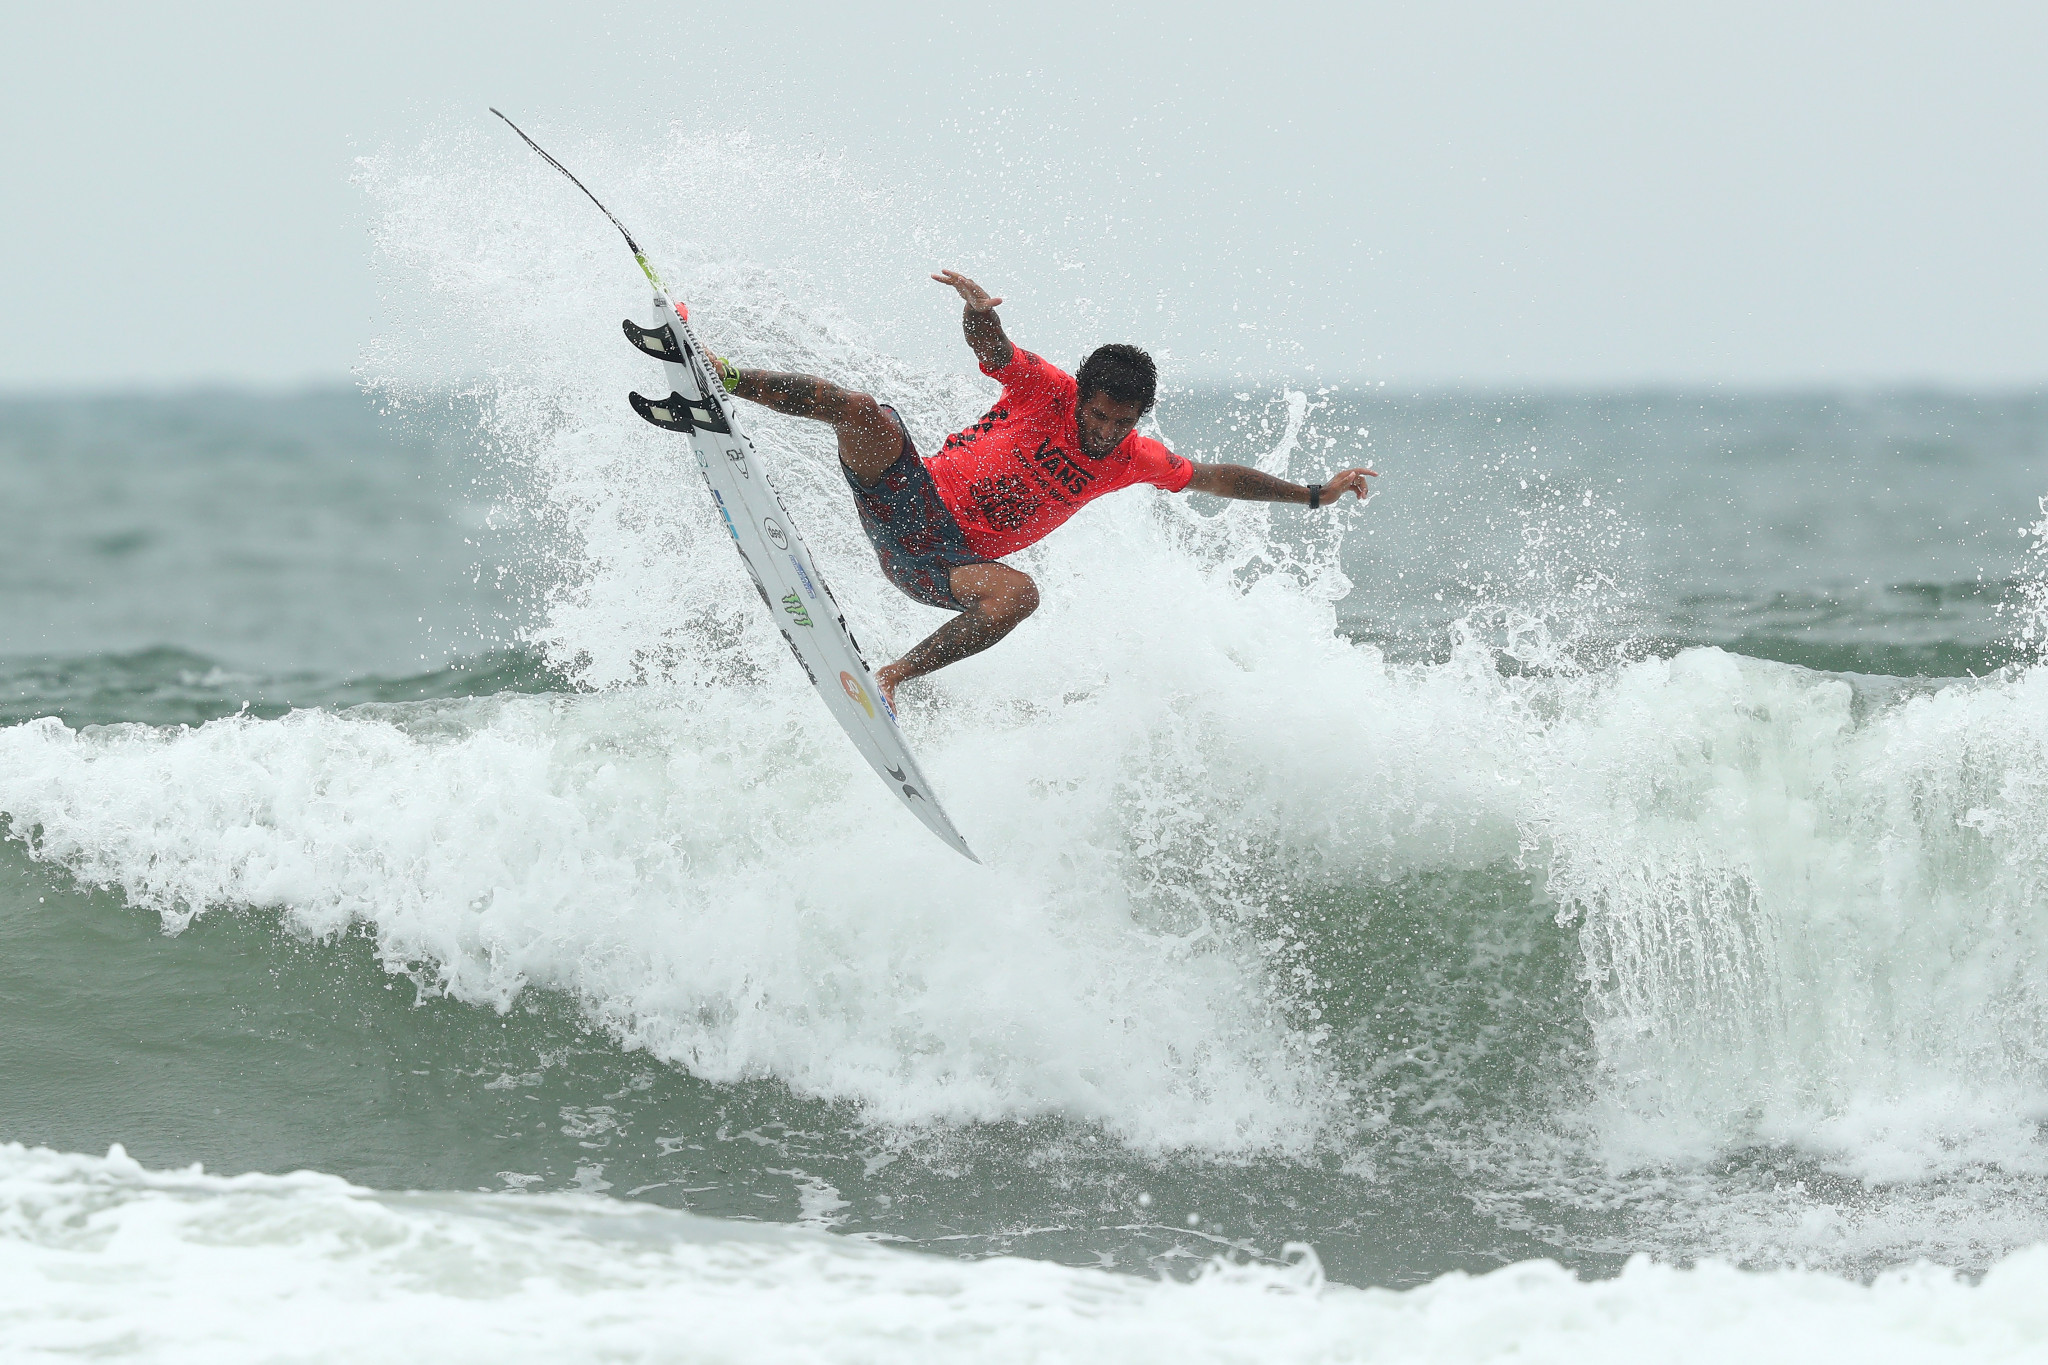 Toledo exits on day of surprises at World Surf League leg in Rottnest Island